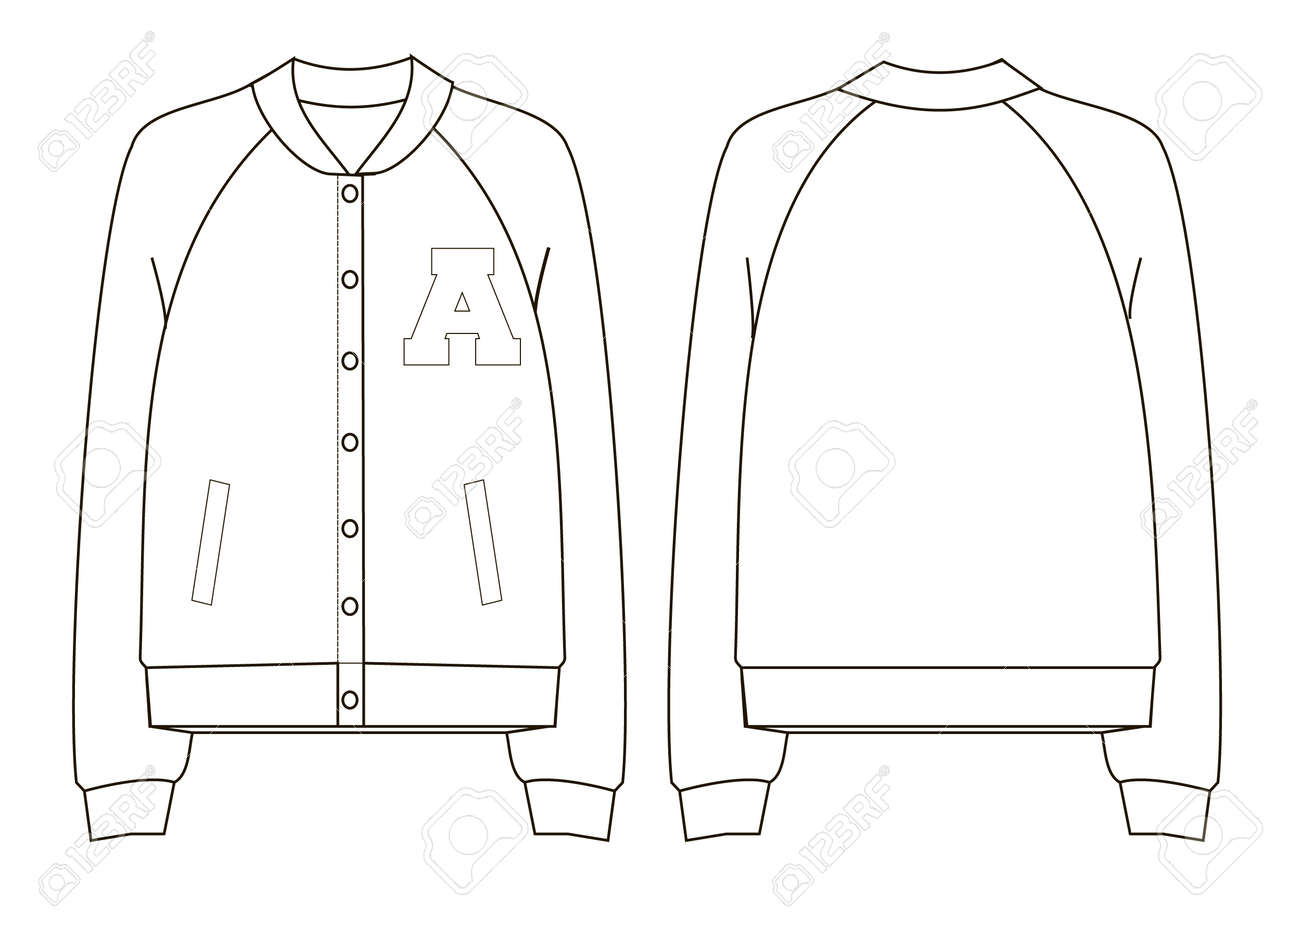 Unisex College Bomber Jacket Technical Sketch Royalty Free Cliparts